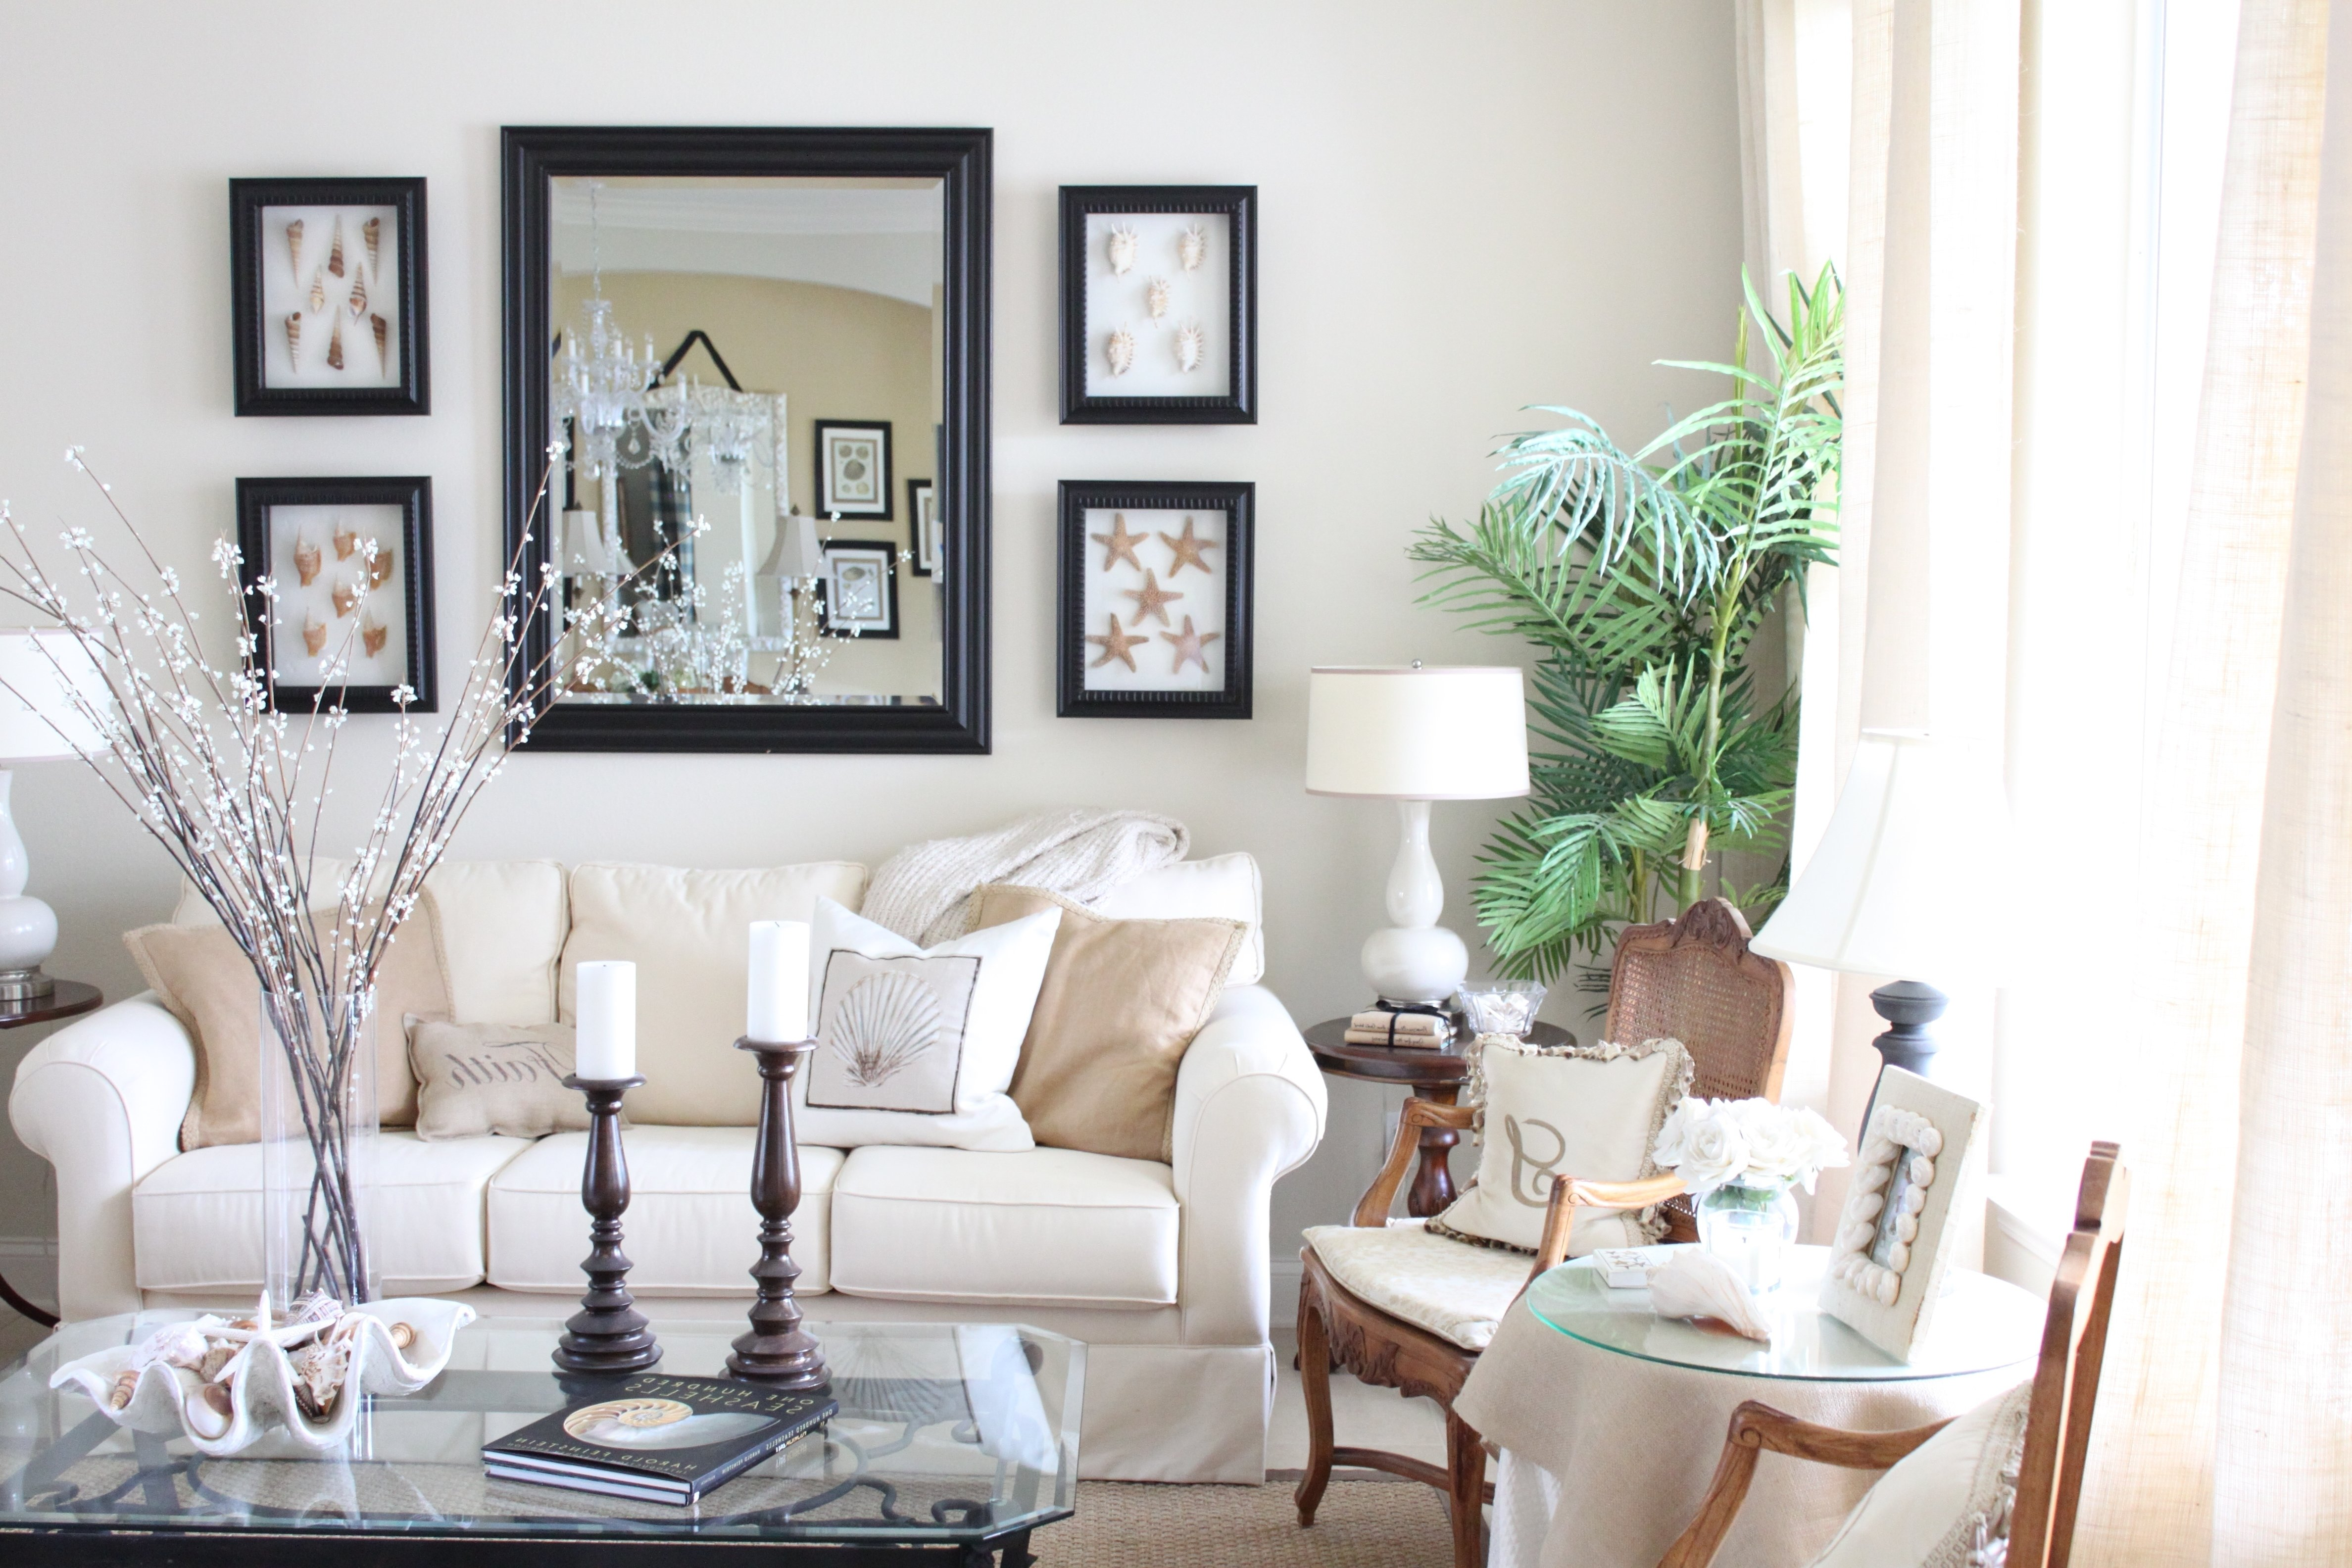 10 Ideal Living Room Decor Ideas Pinterest adorable small living room decorating ideas pinterest l bee together 1 2021